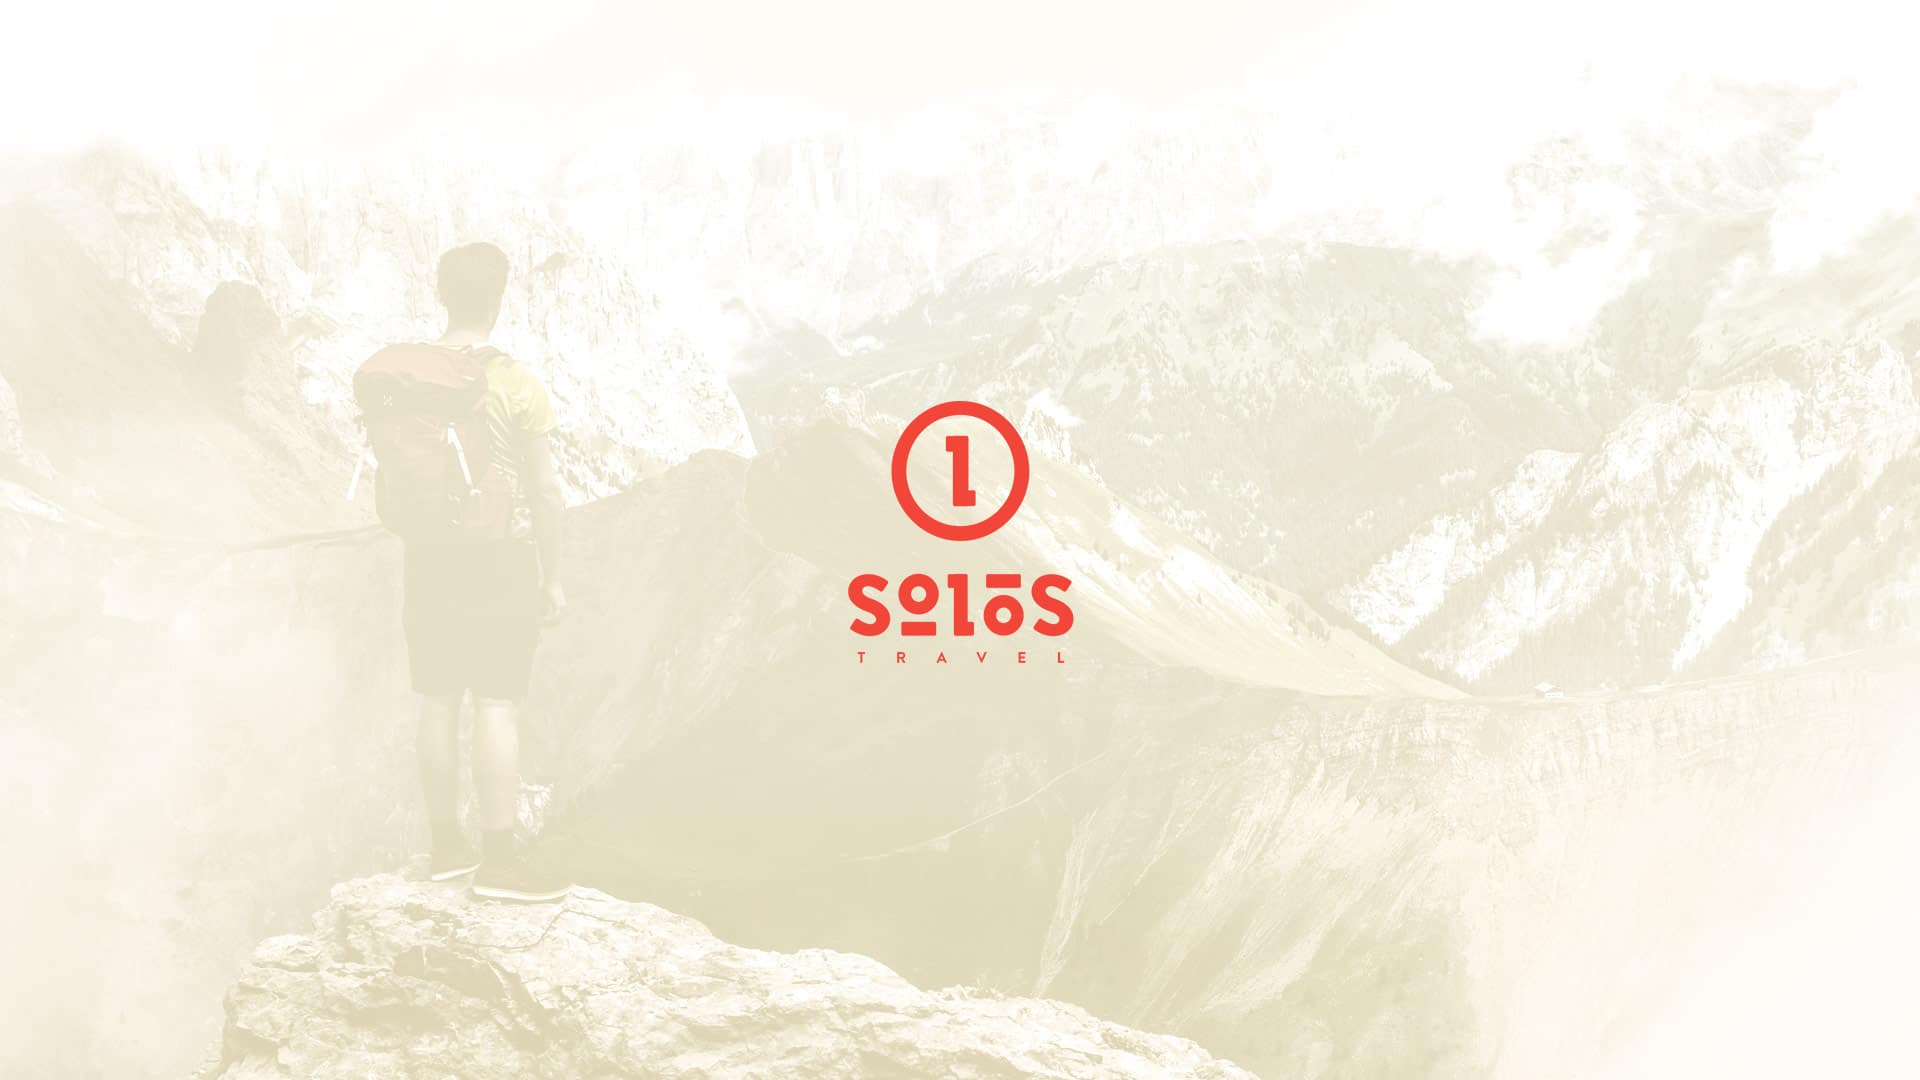 solos-apparel-branding-agency-nyc